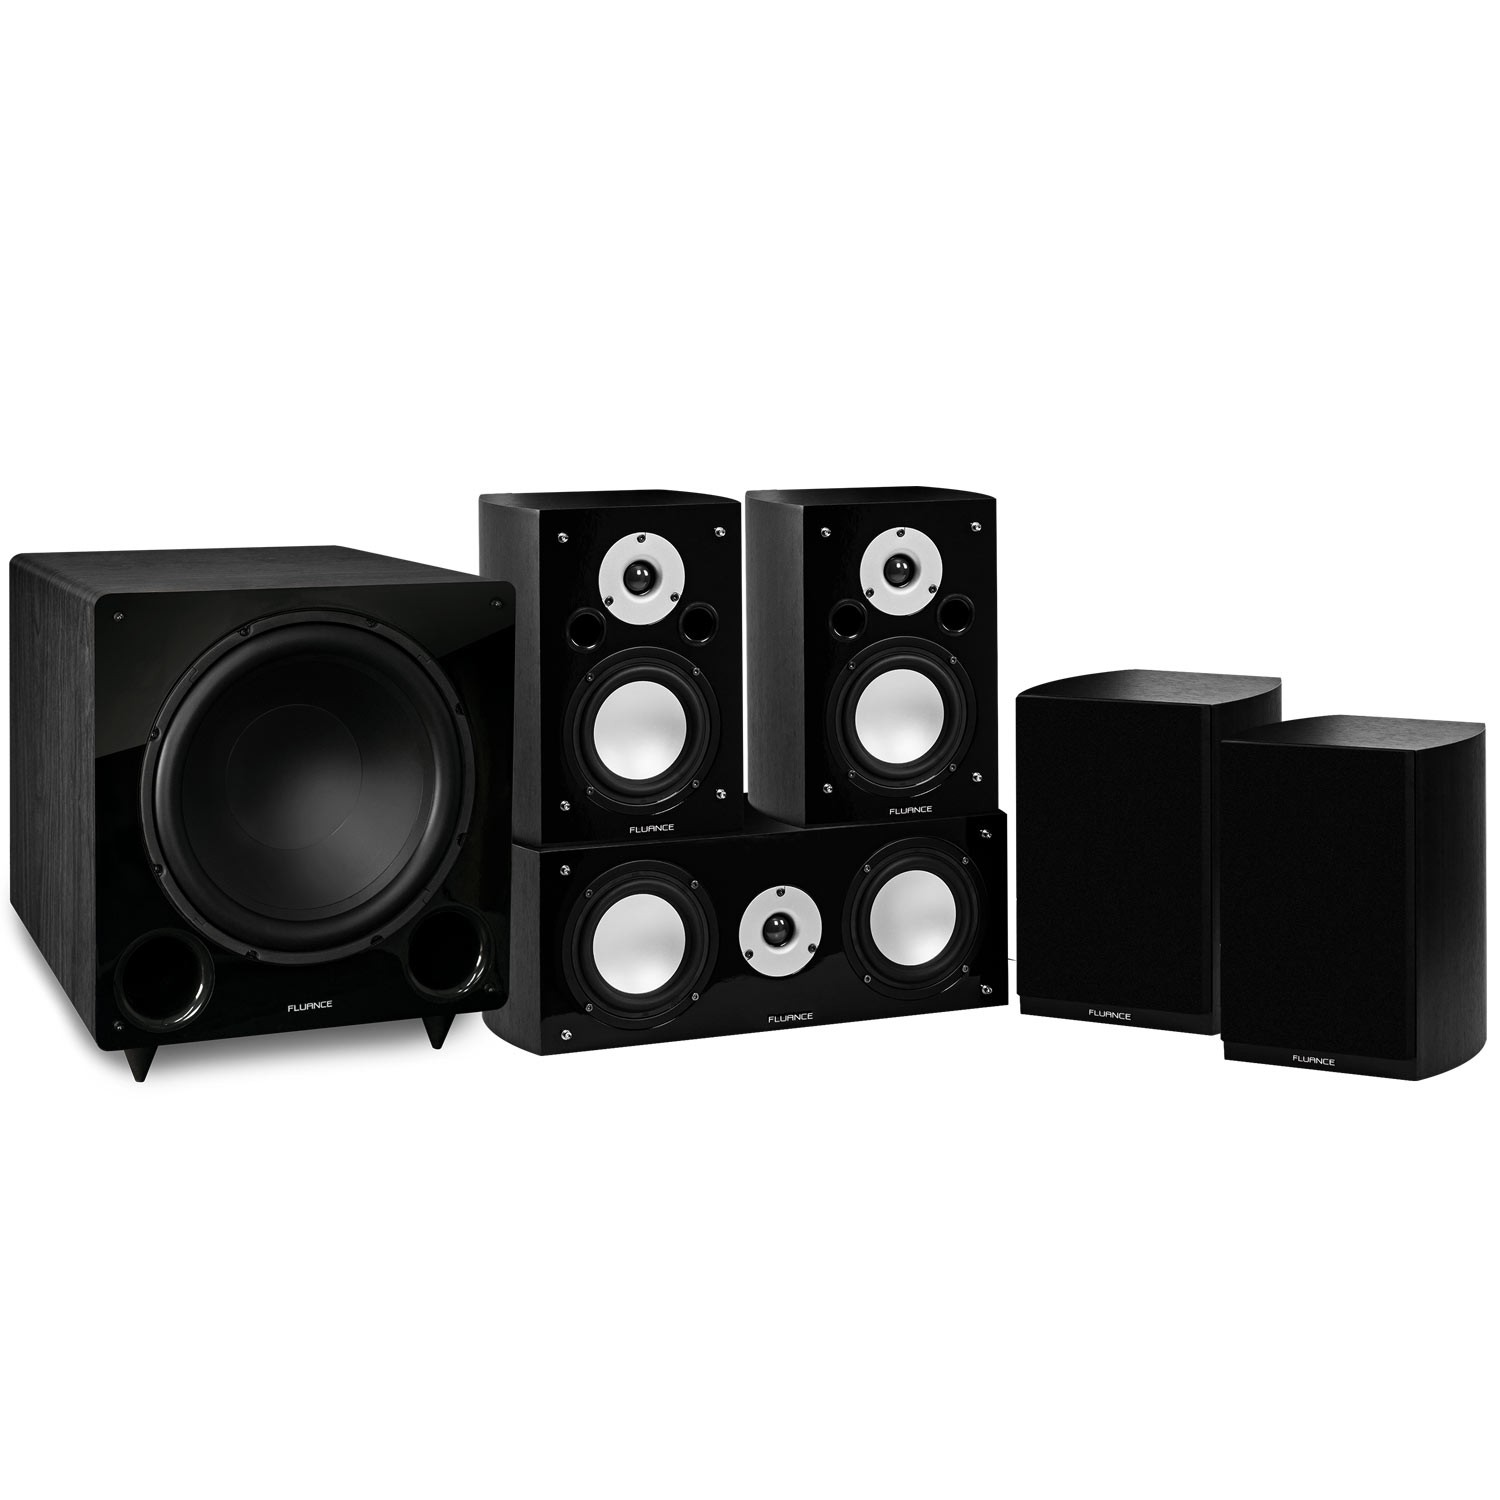 Reference Series Black Ash Compact Surround Sound Home Theater 5.1 Channel Speaker System